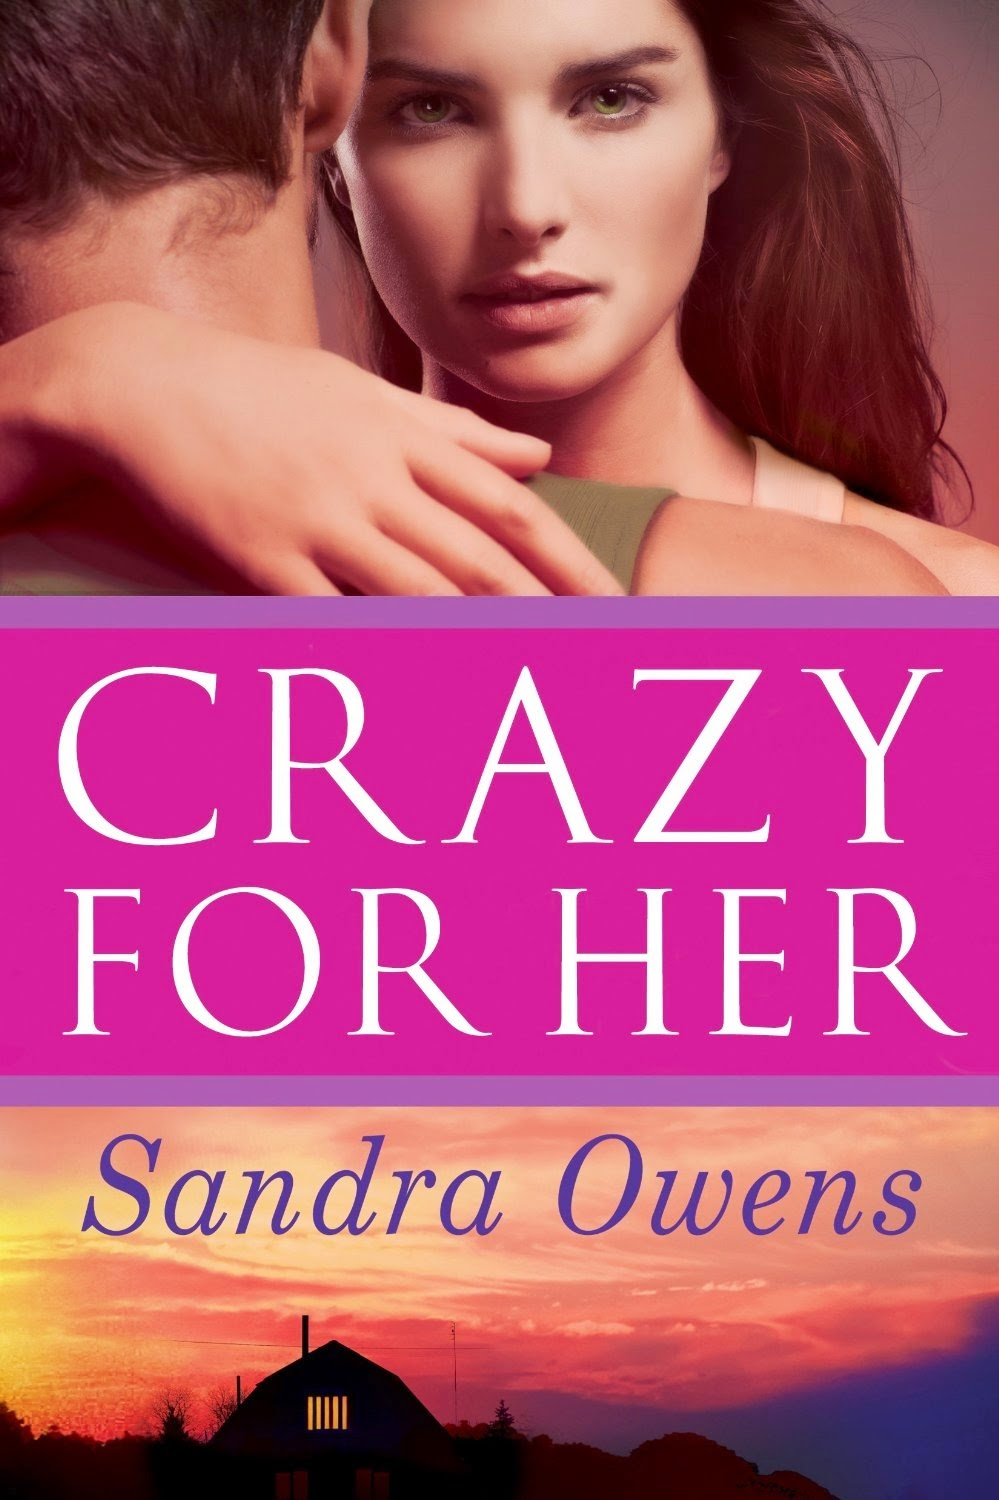 https://www.goodreads.com/book/show/22813862-crazy-for-her